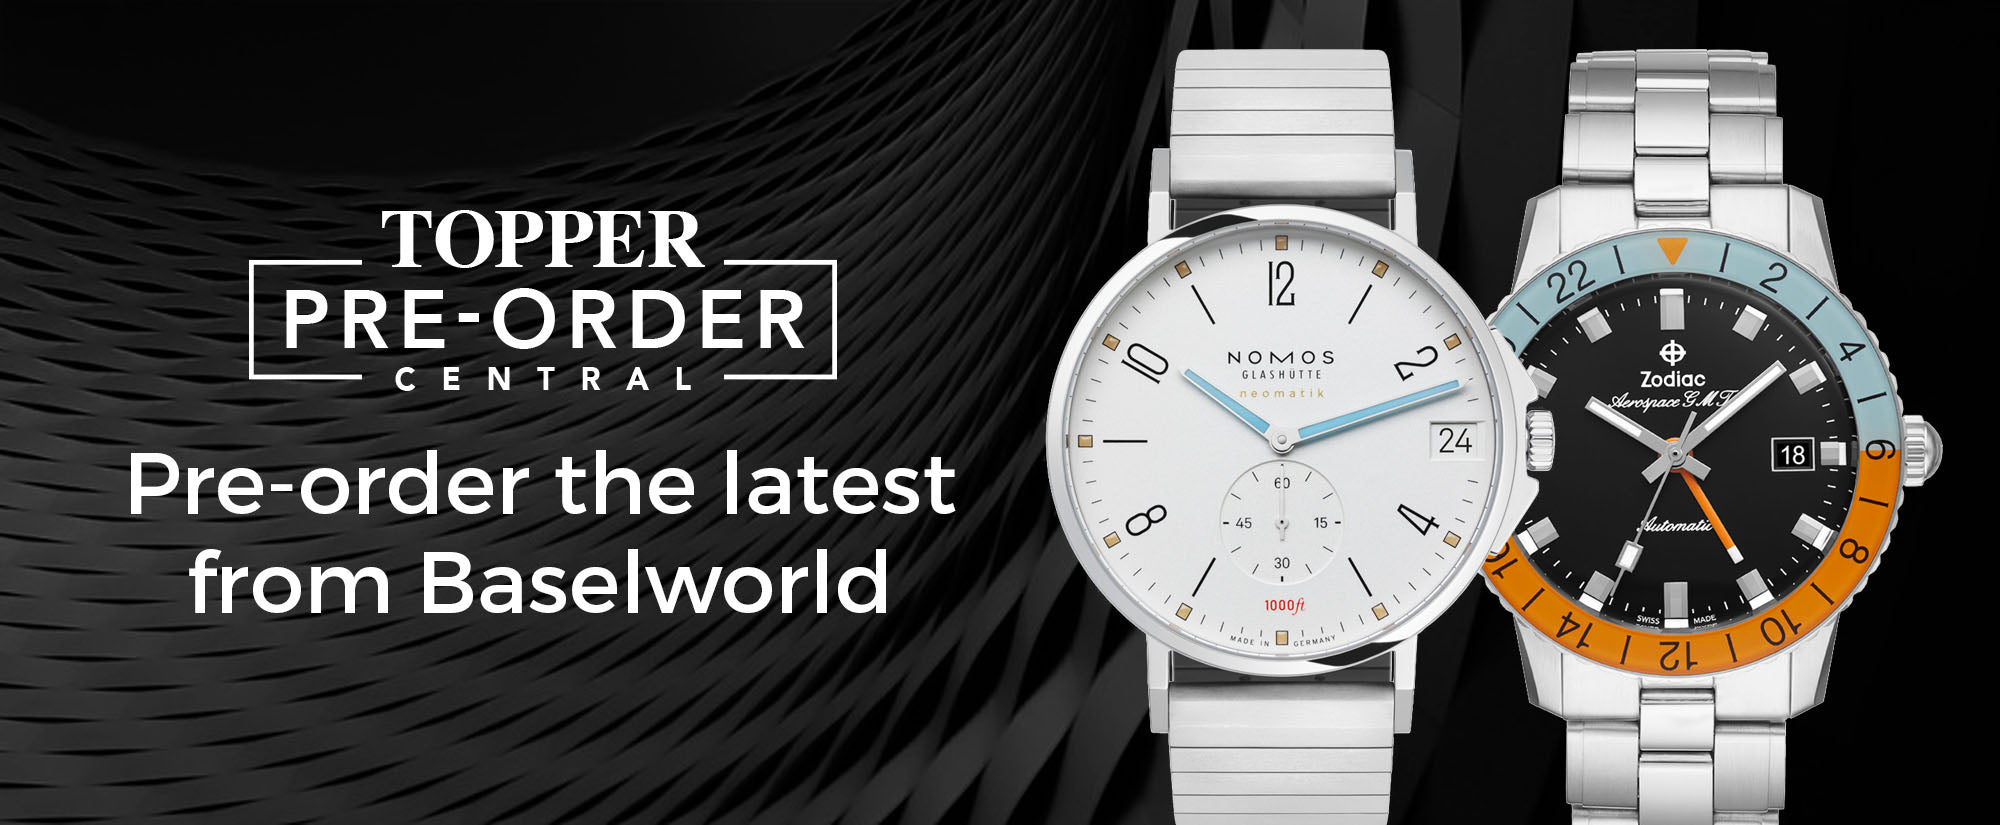 Pre-order the latest from Baselworld